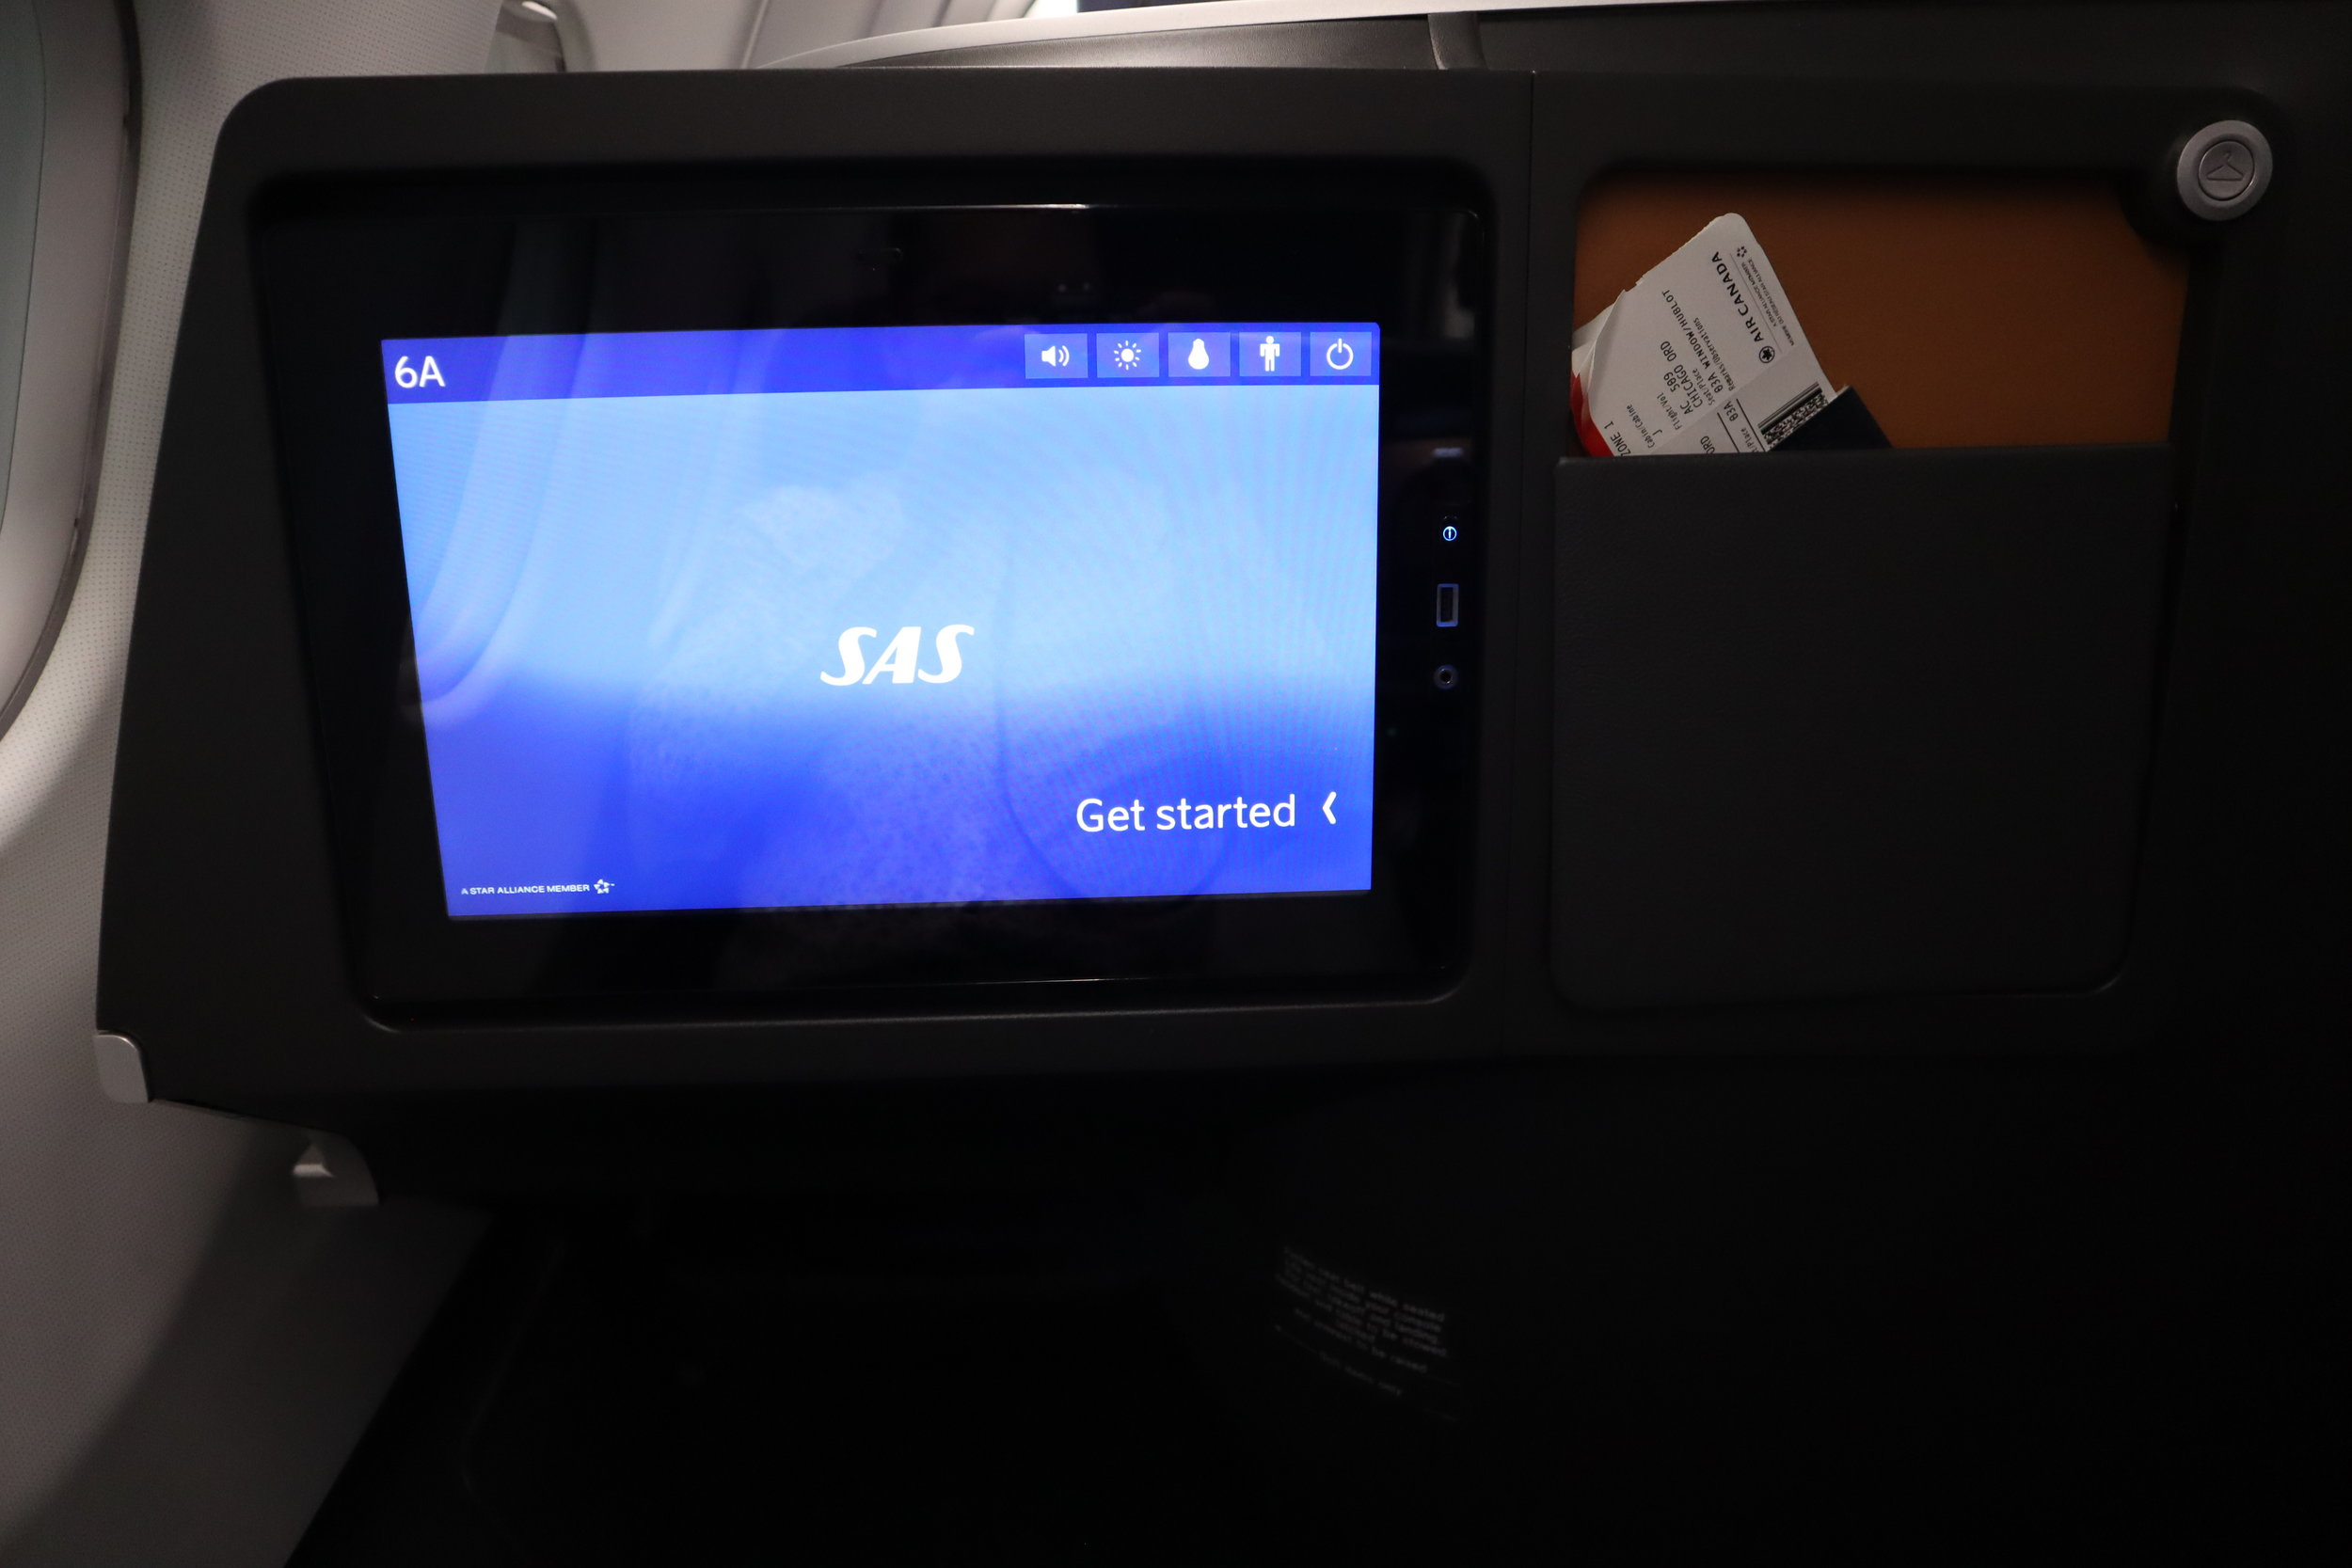 SAS business class – Entertainment monitor and literature pocket